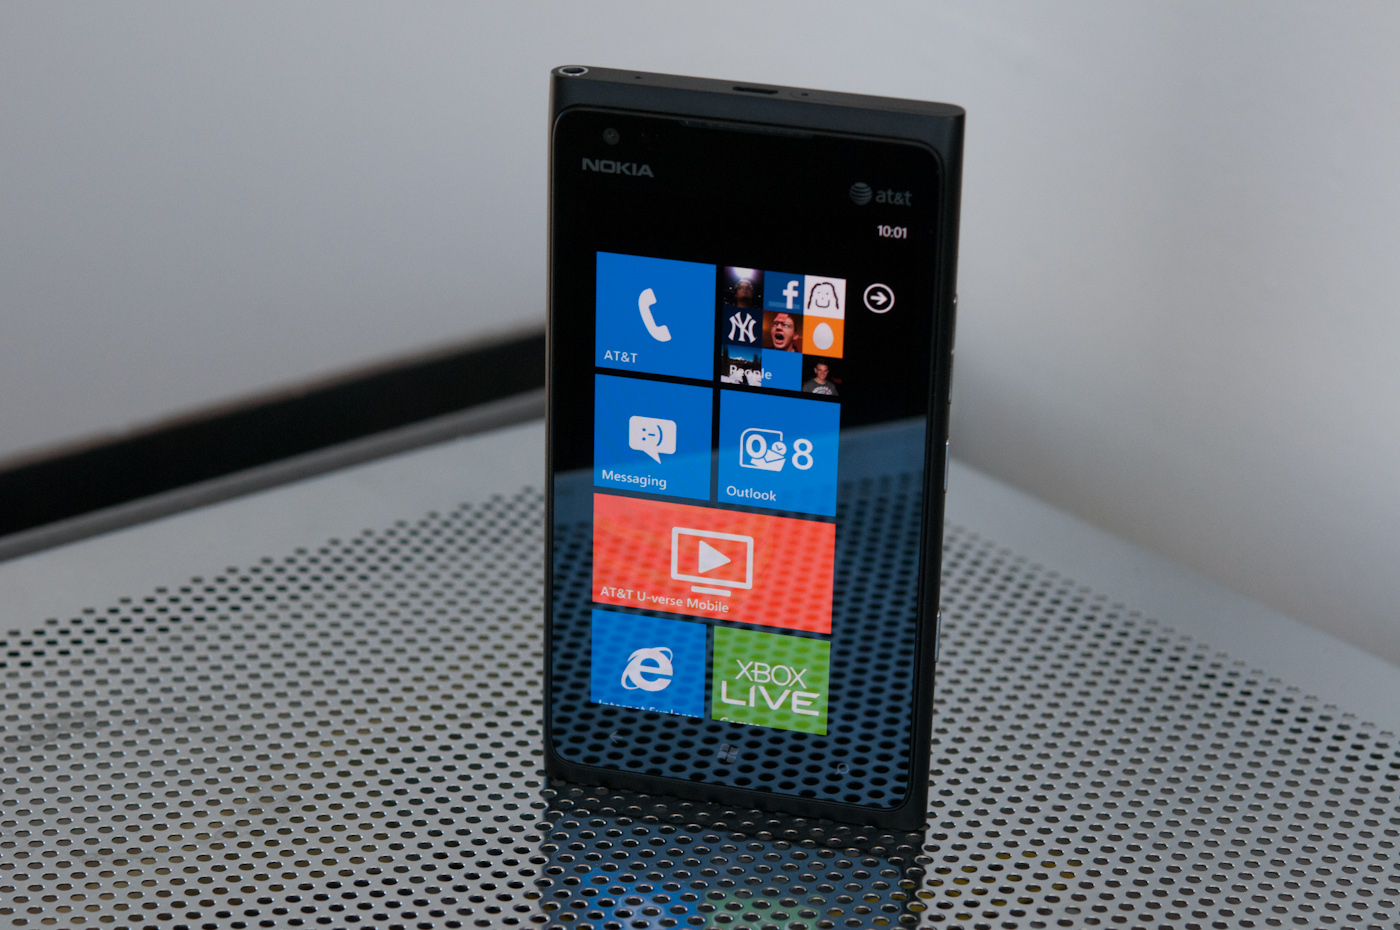 Nokia Lumia 900 Phone